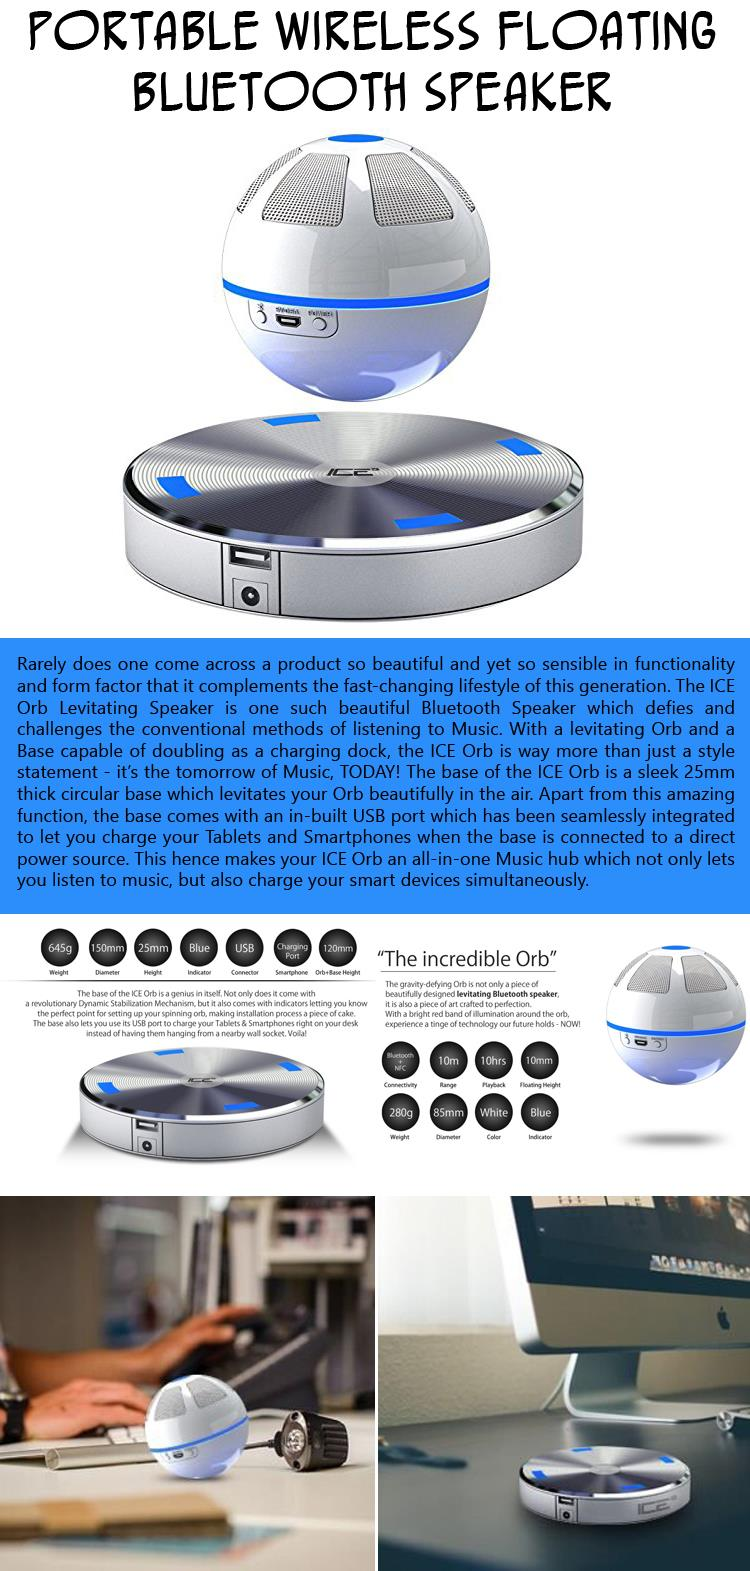 Portable Wireless Floating Bluetooth Speaker